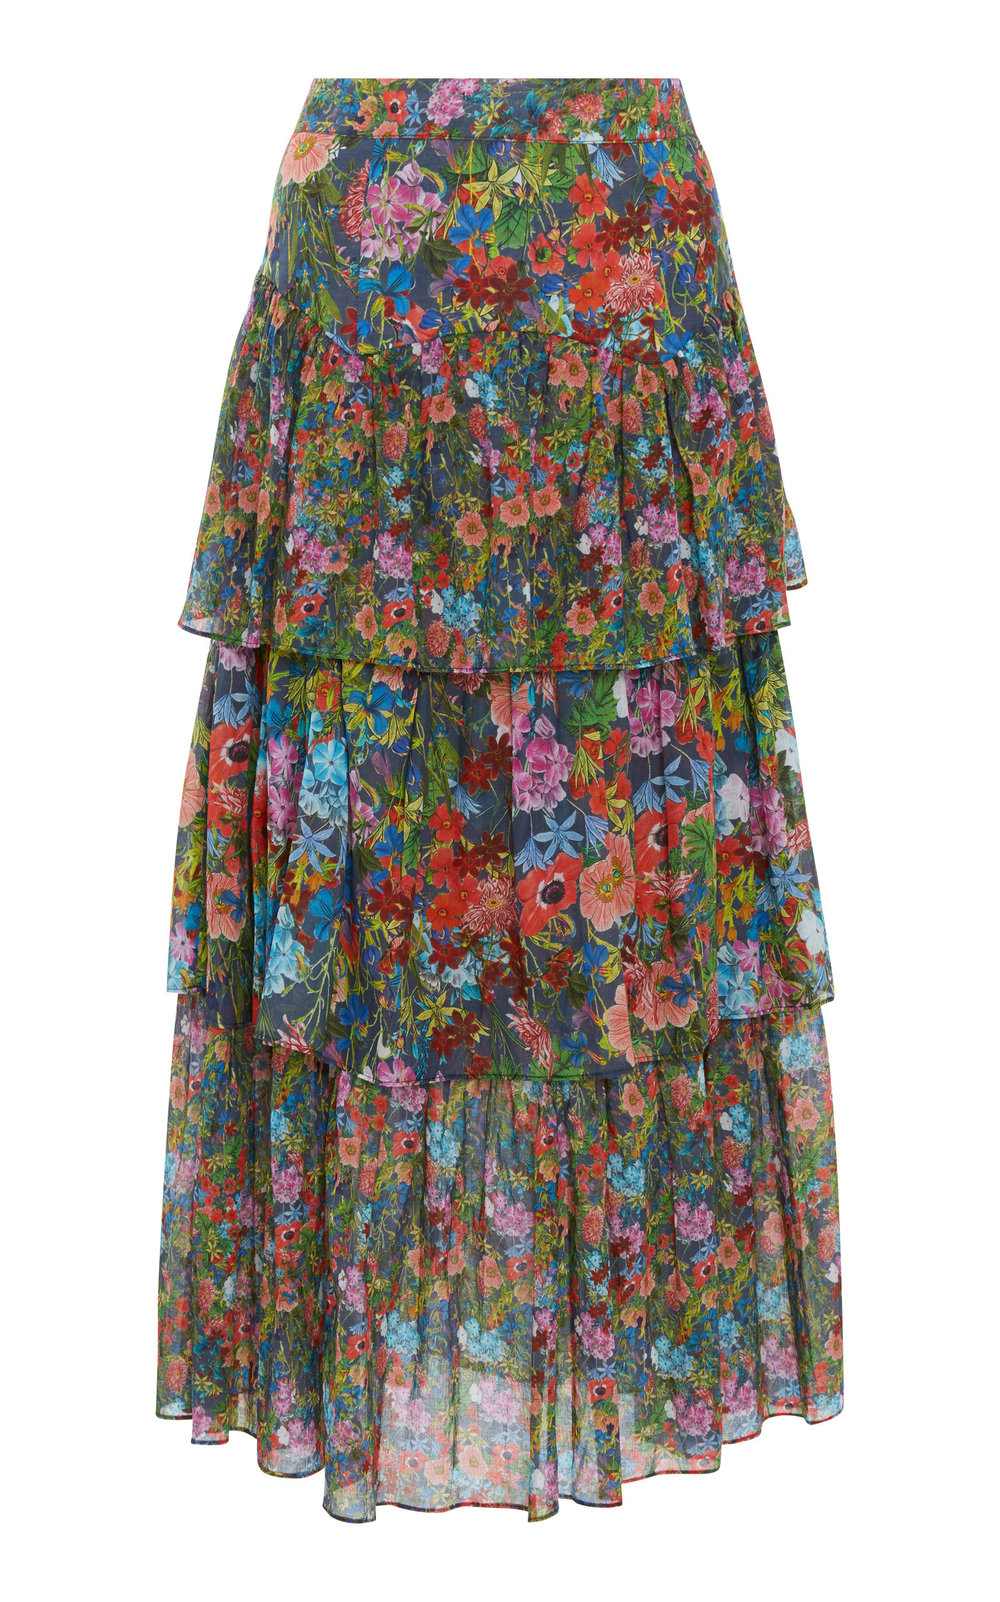 Warm Band Tiered Cotton Skirt ColorFloral